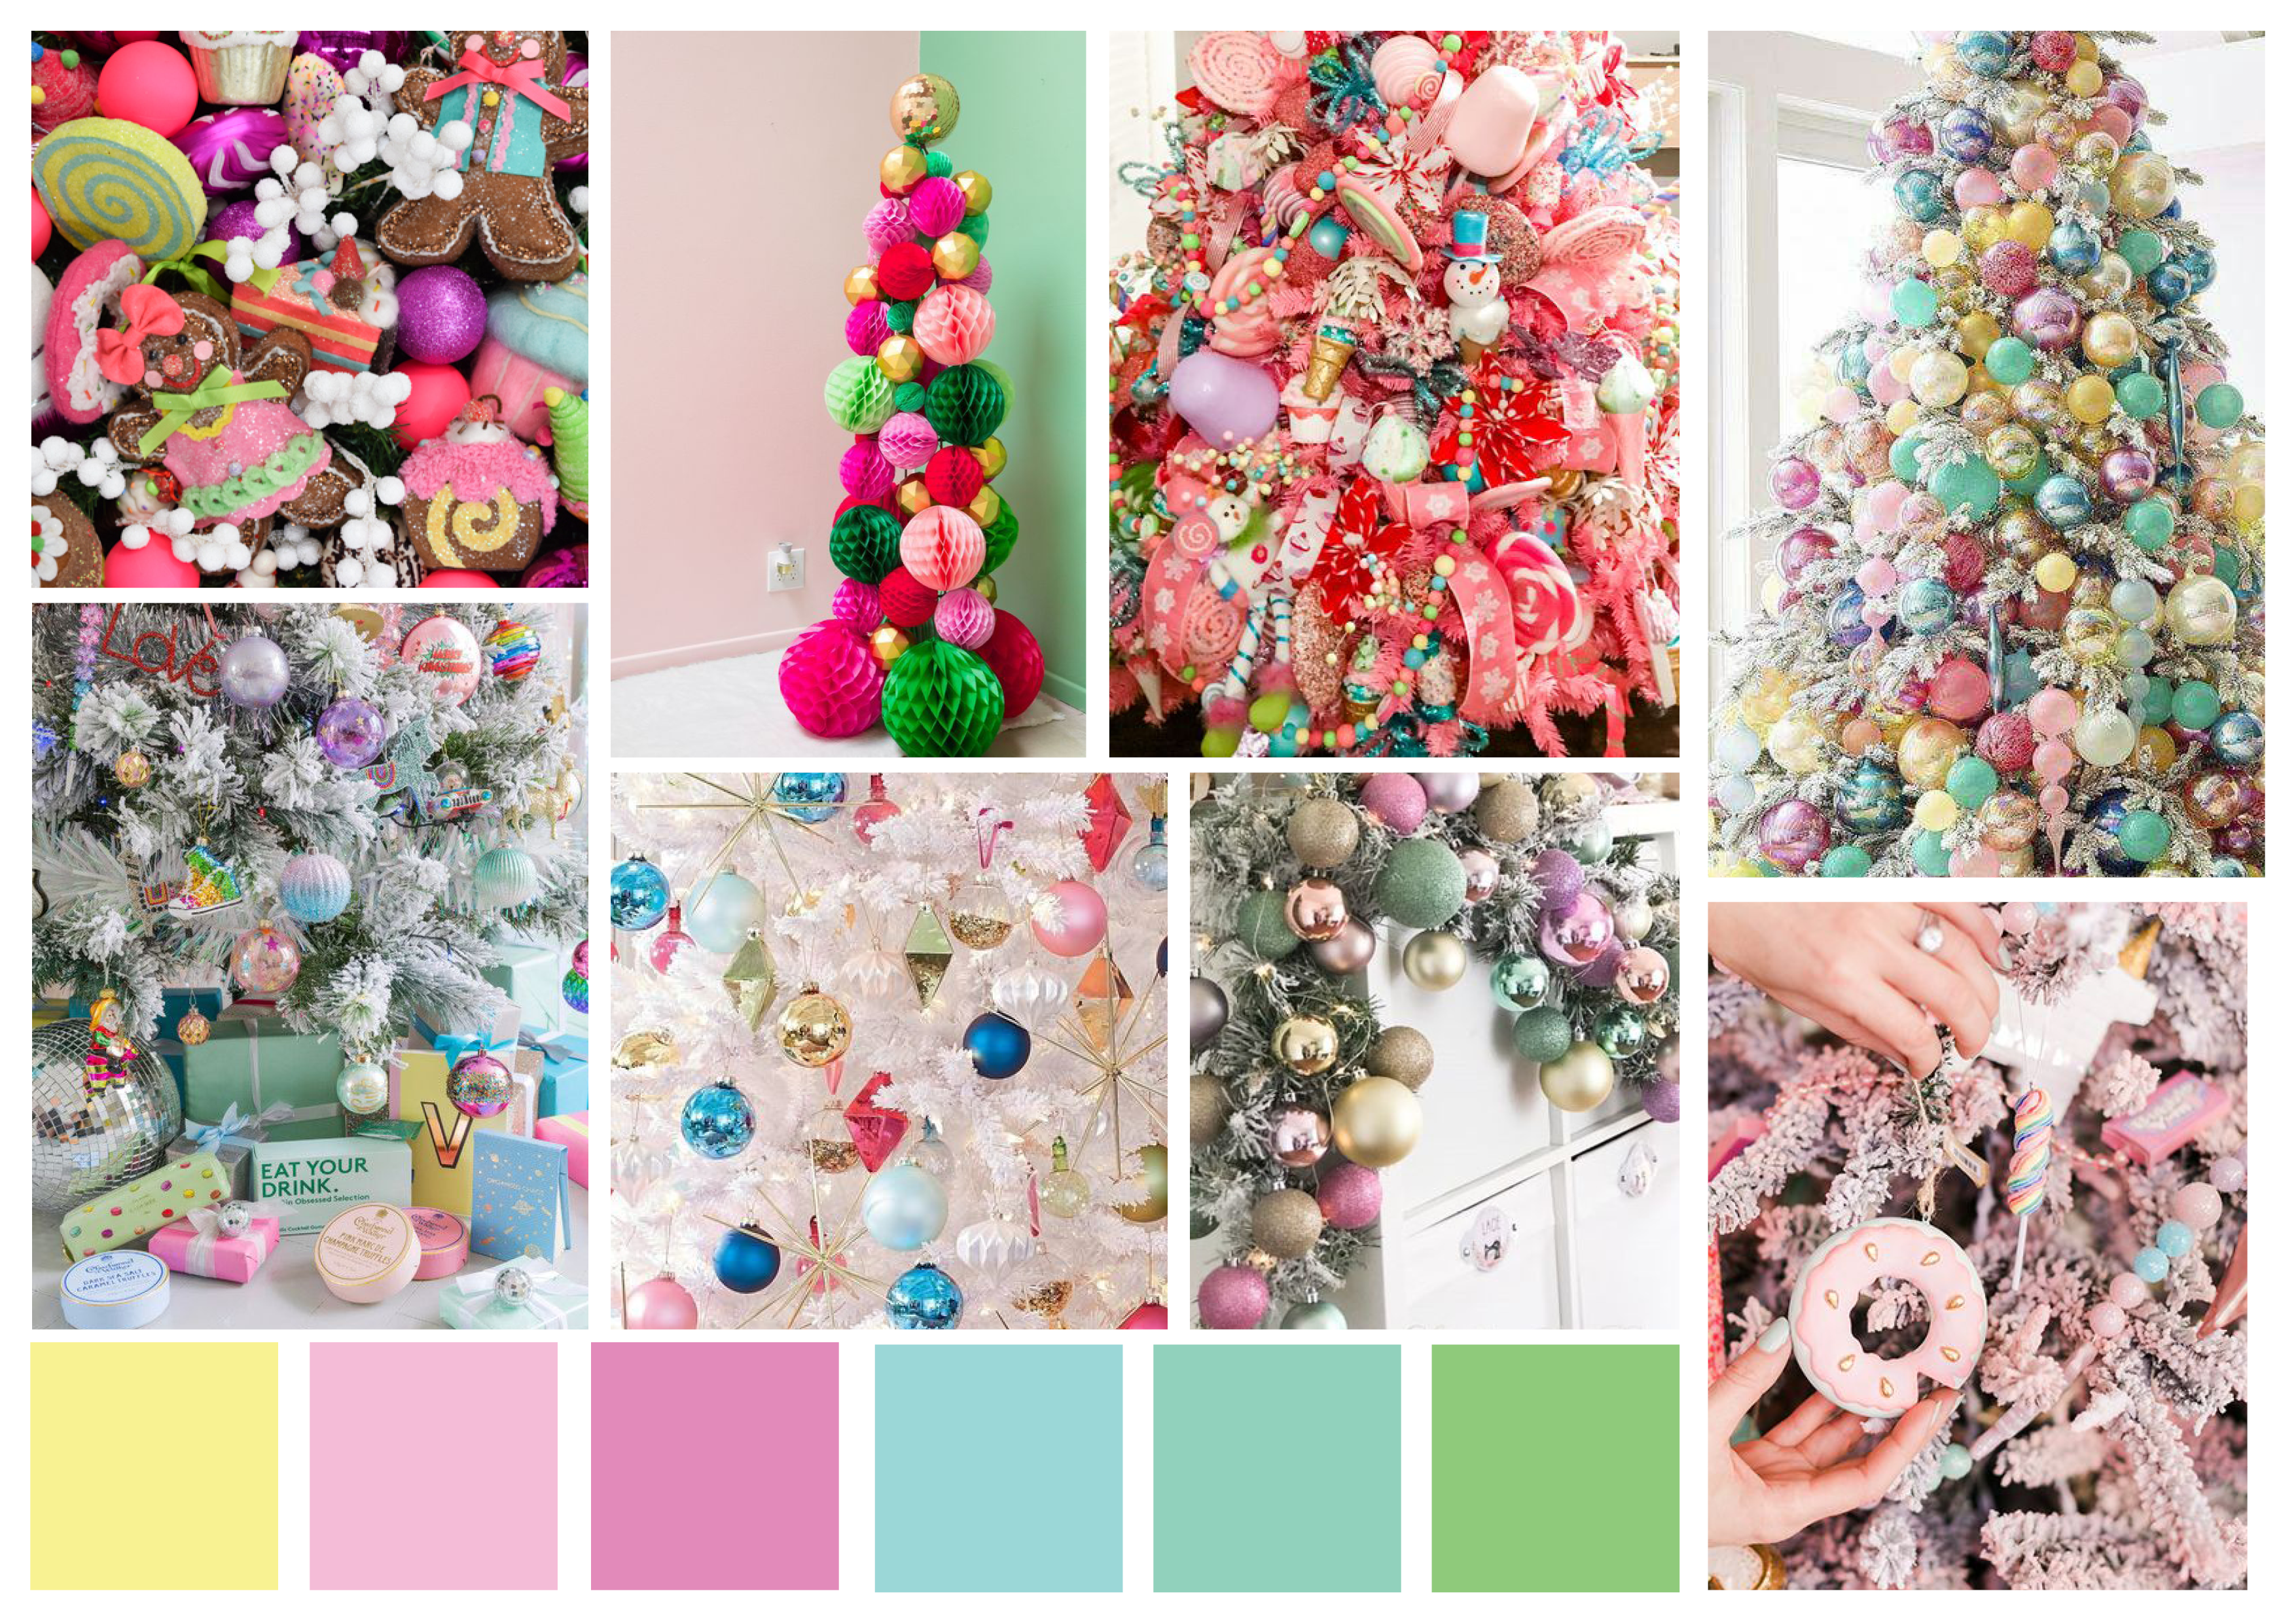 Display boxes of Christmas in colourful shades of fun